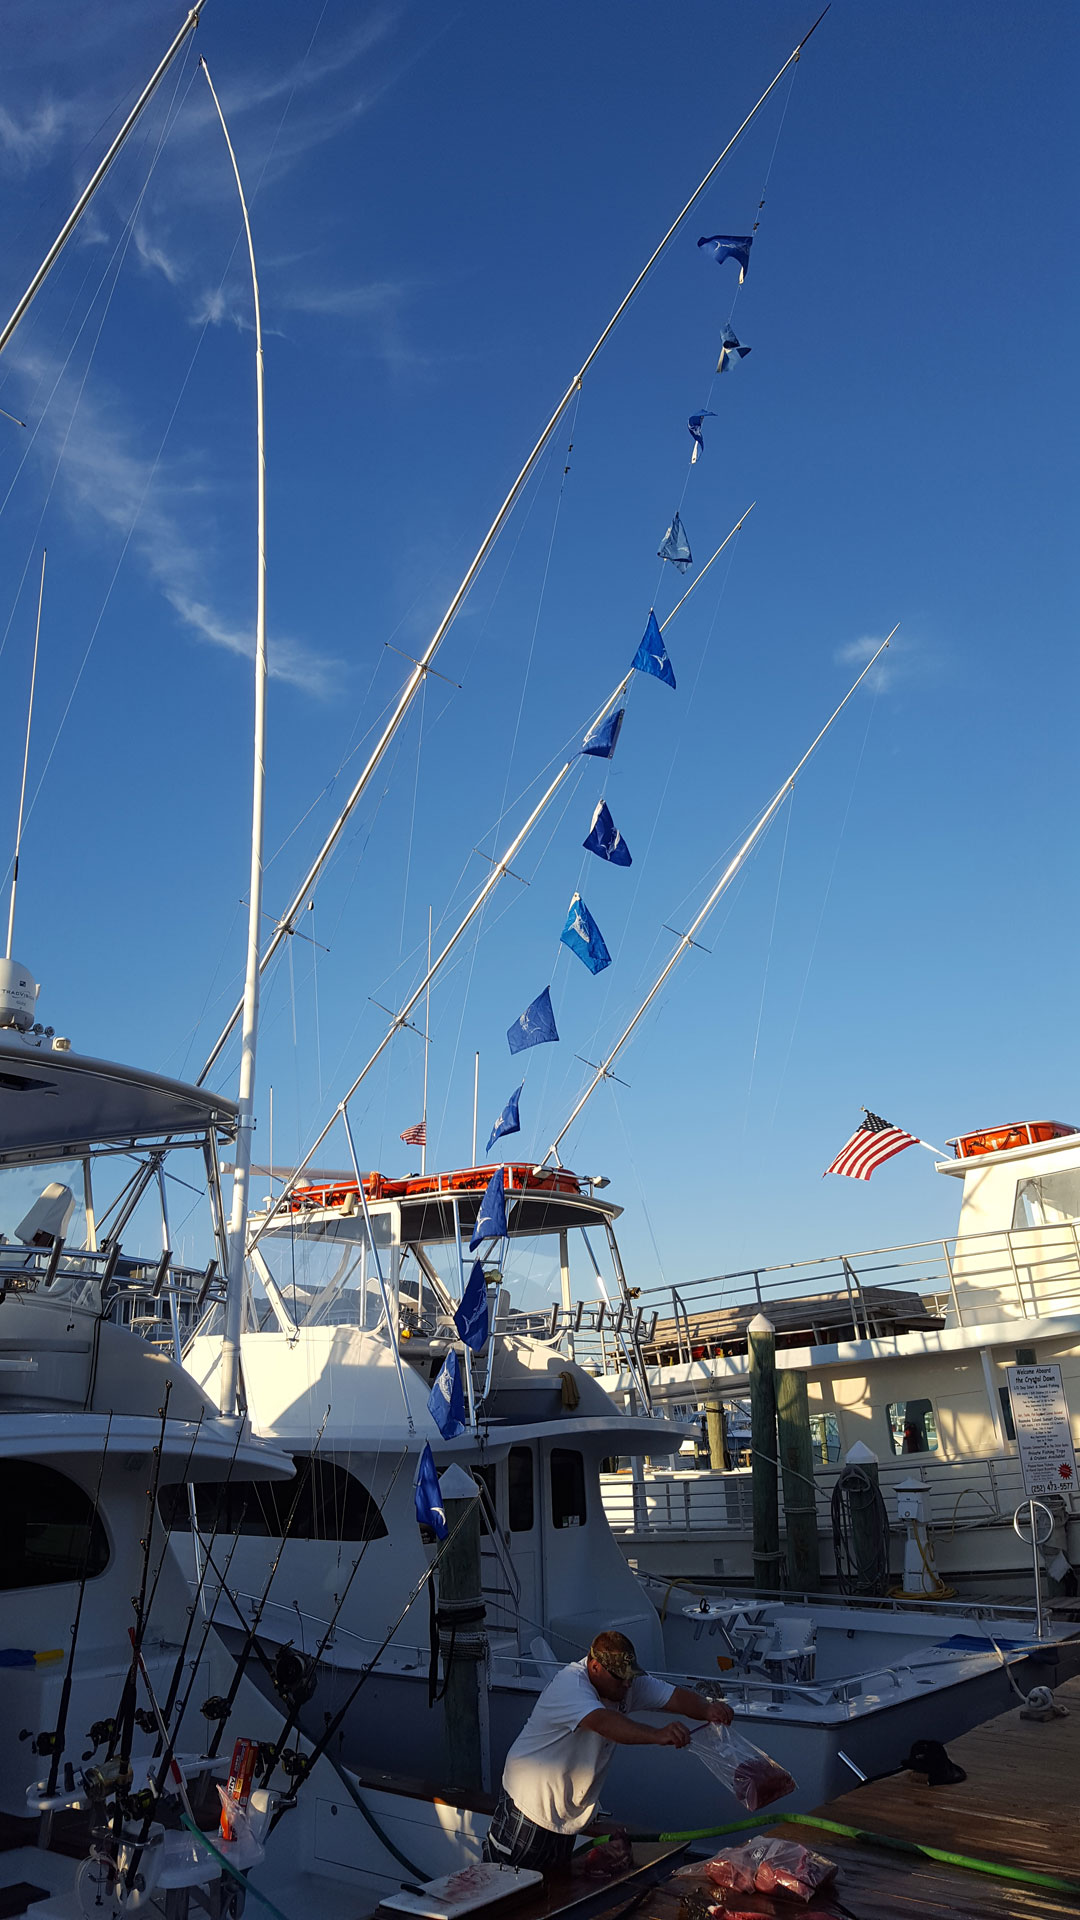 Awesome White Marlin fishing for us today. 14 White Marlin and a 69 lb. Tuna. Give us a call